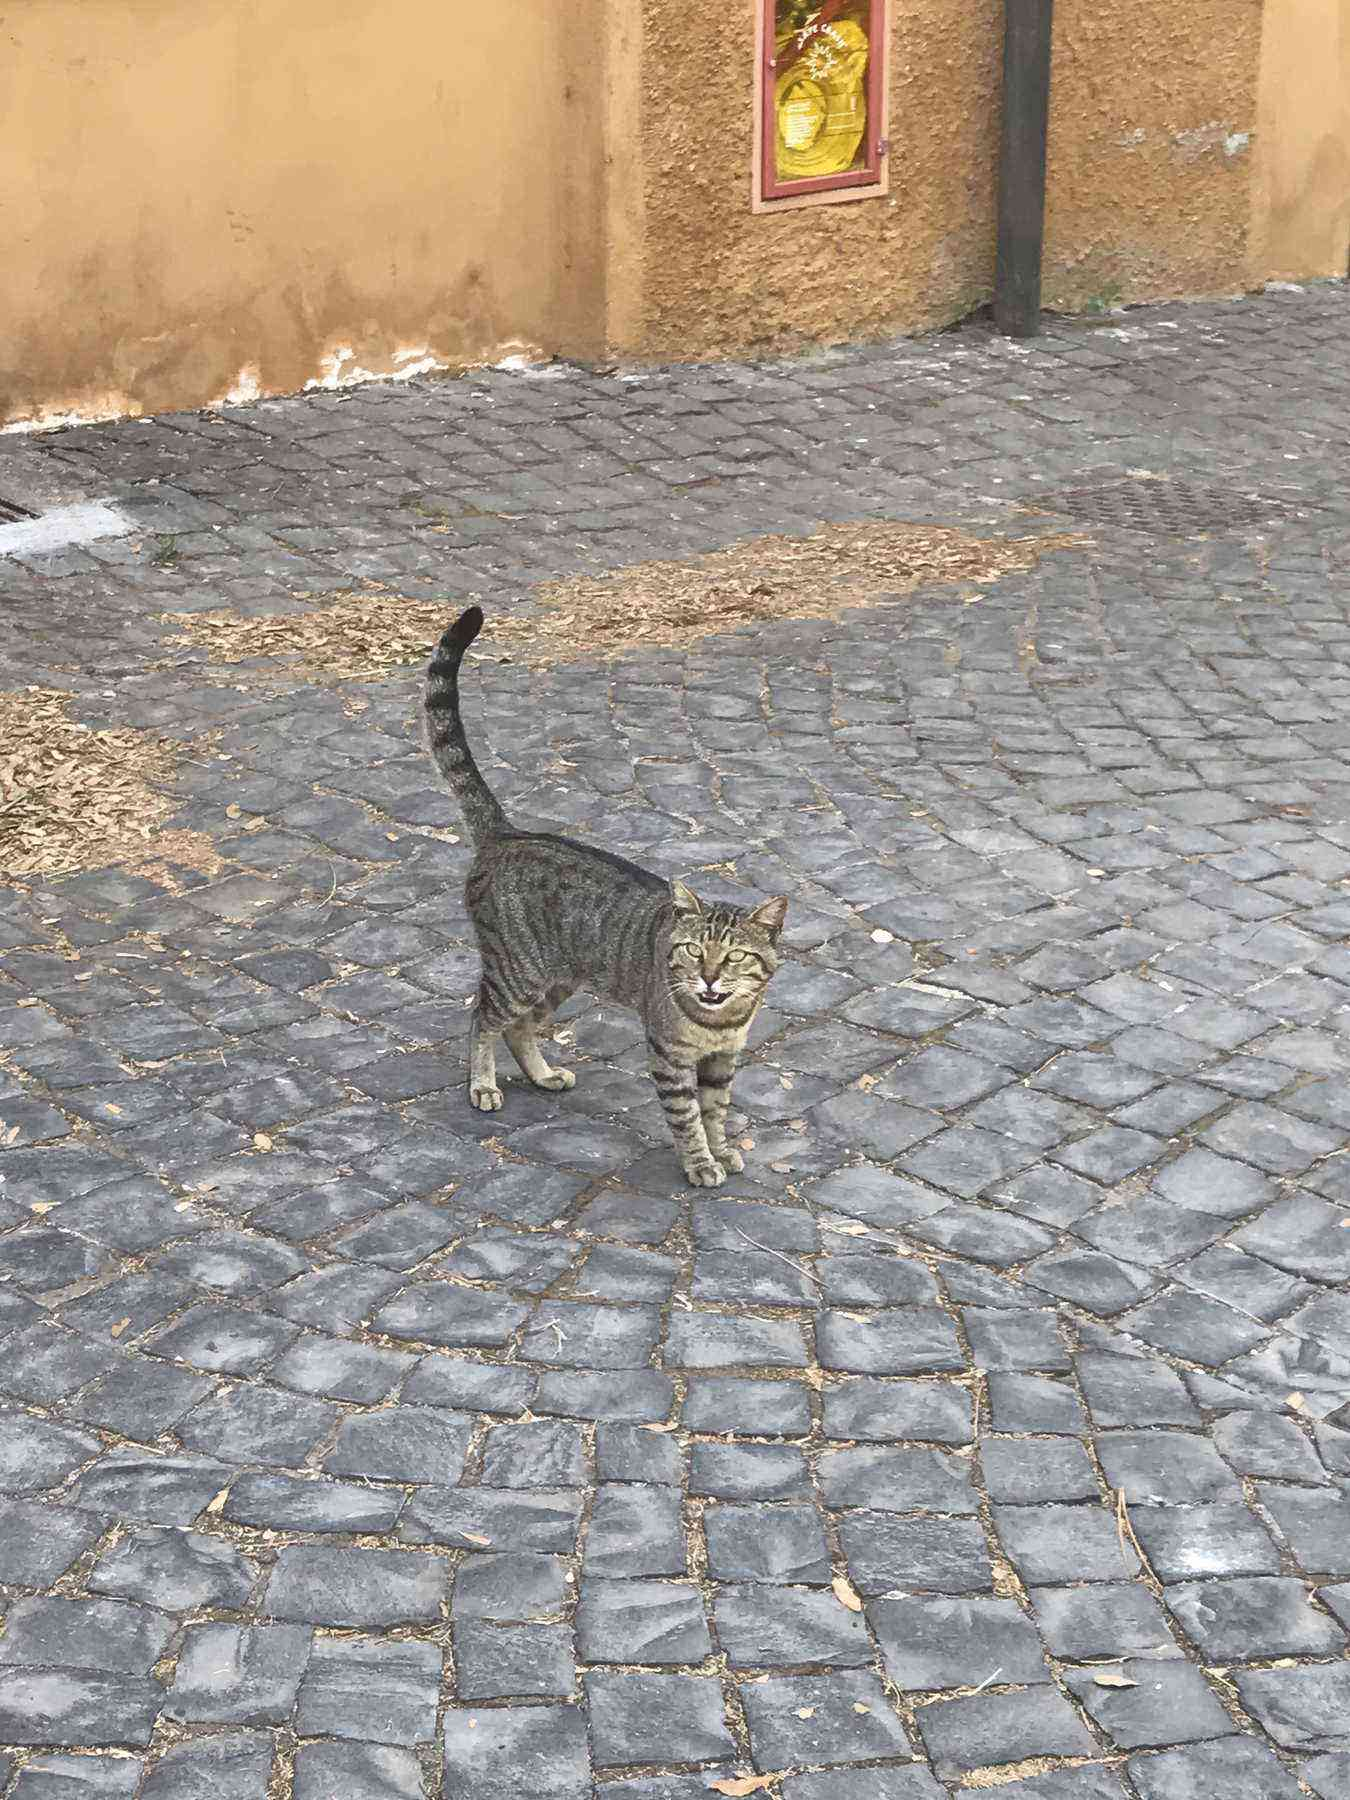 One of the property's seven cats